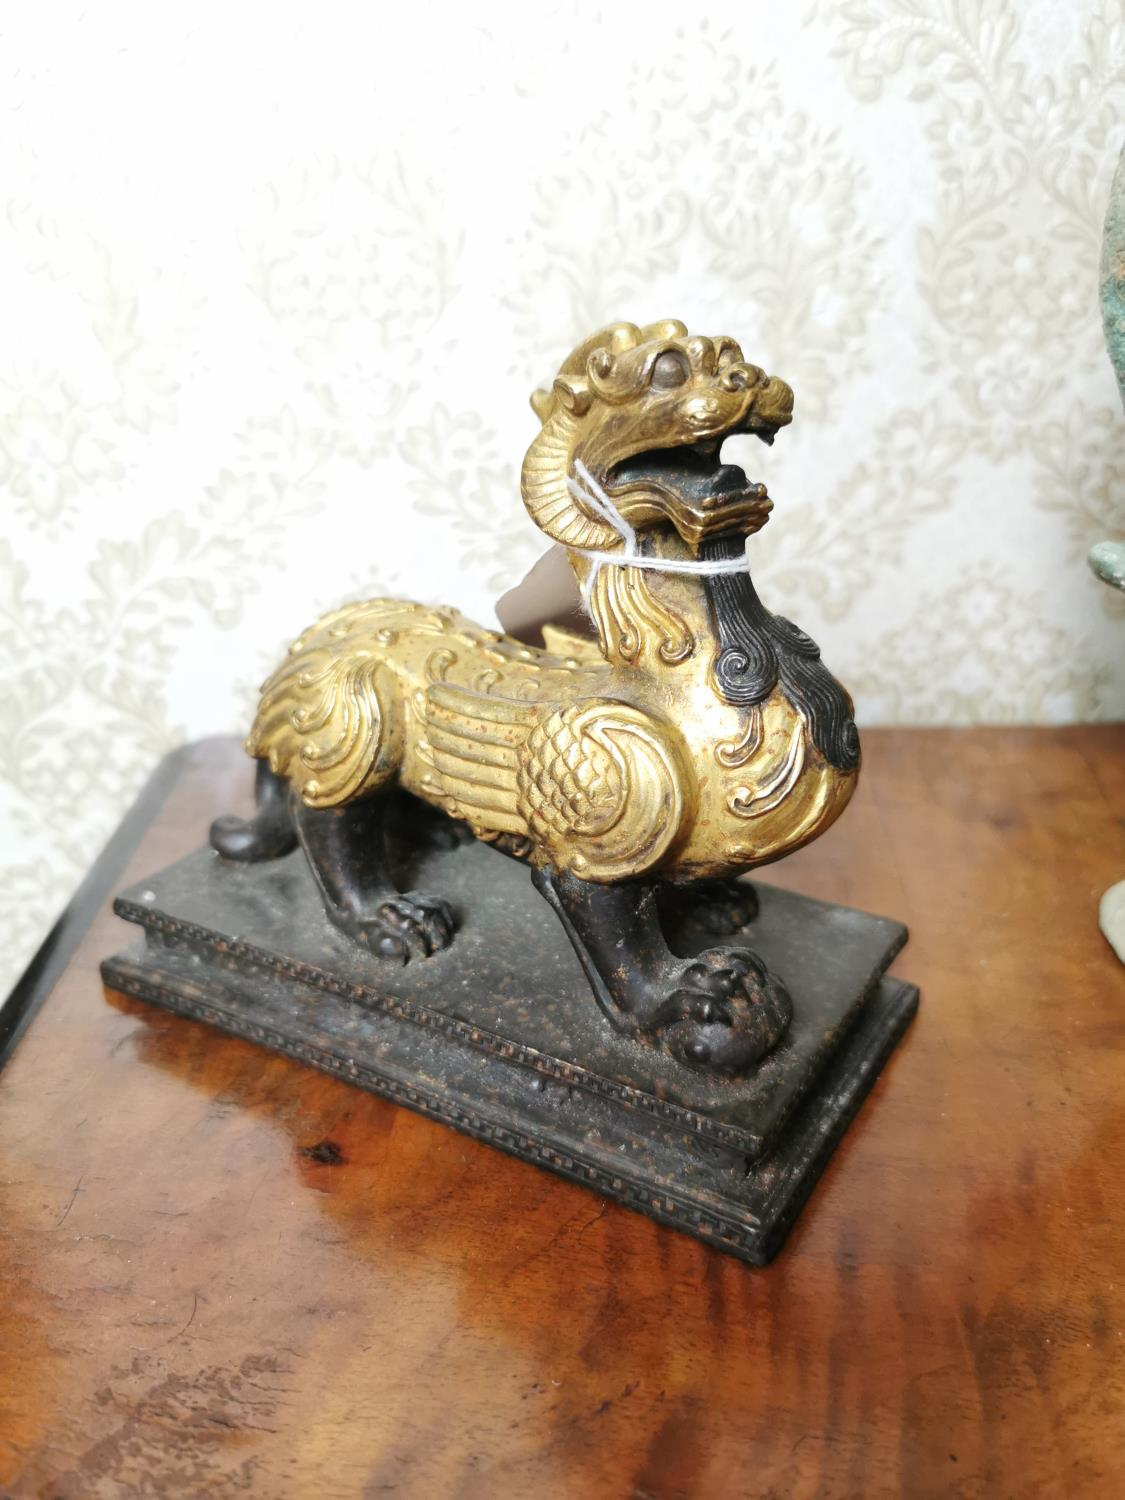 Gilded metal model of a dragon